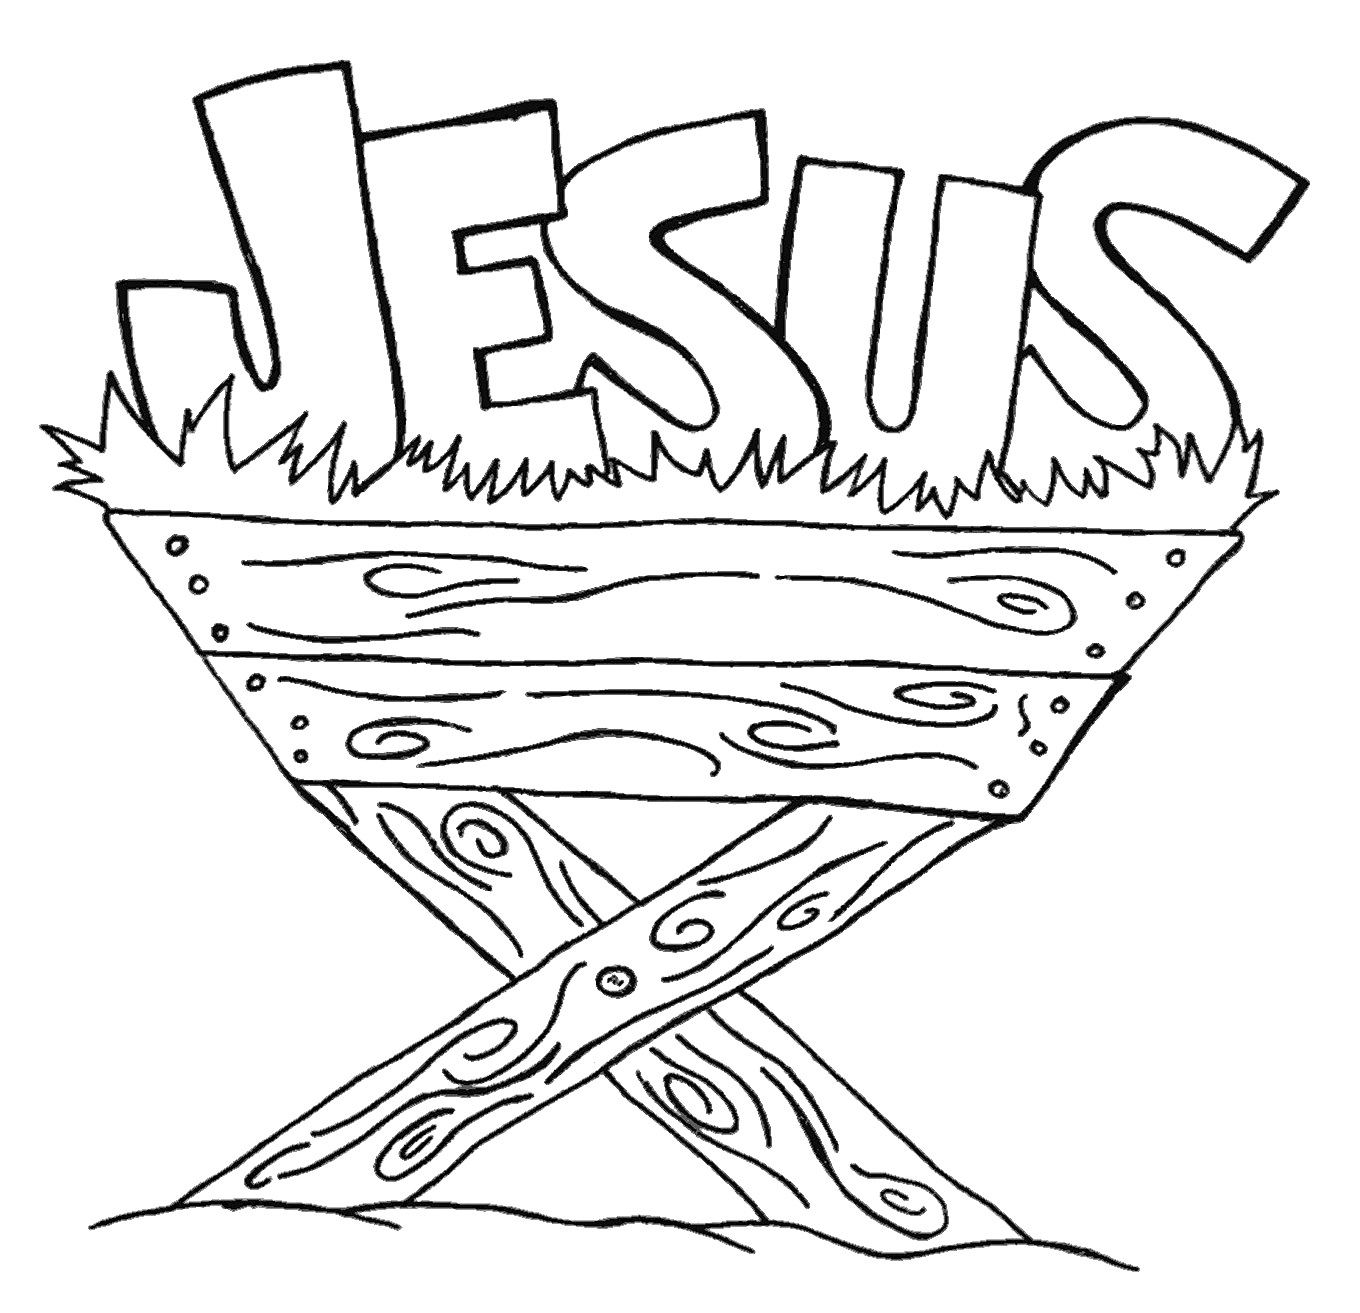 Angel Visits Joseph Coloring Page Free Christian Coloring Pages For Kids And Young Children Level 1